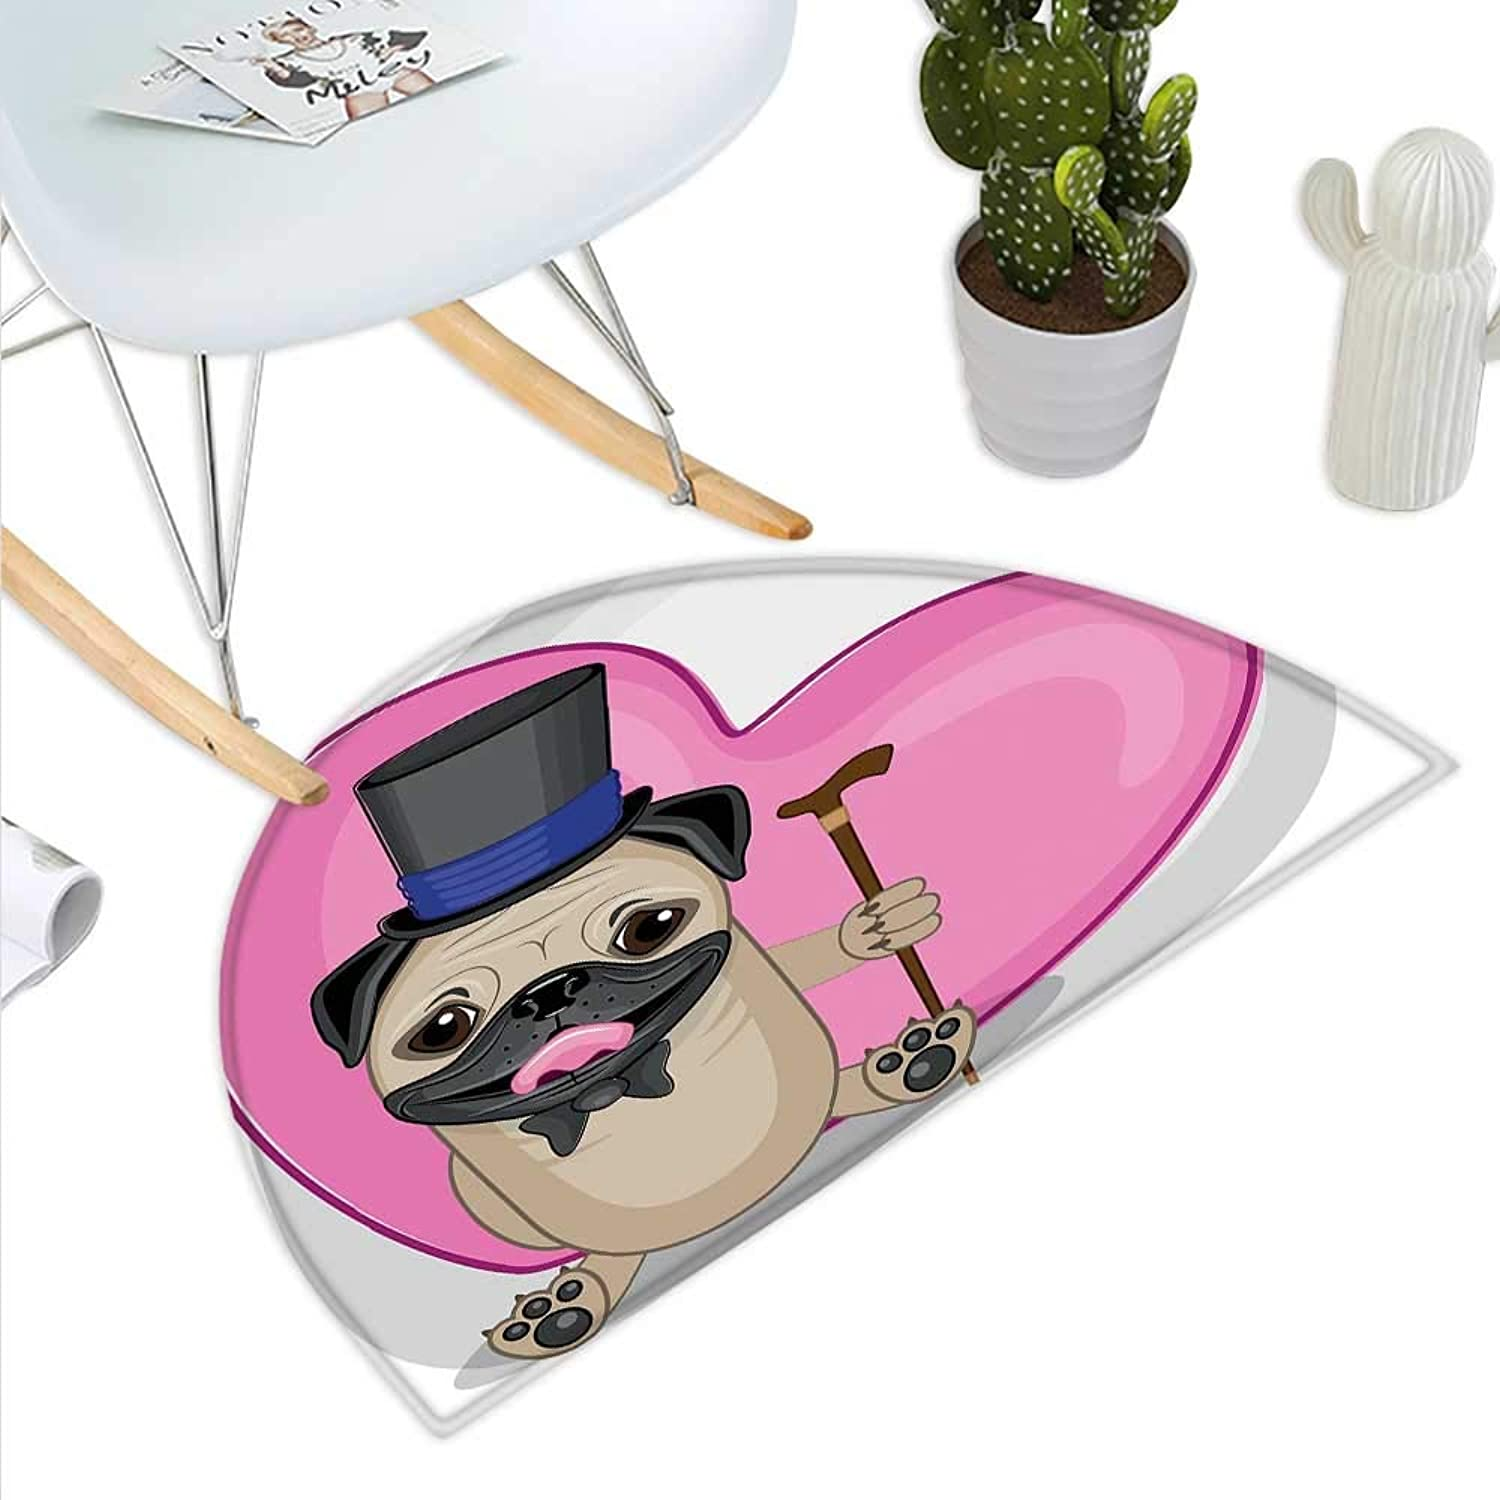 Pug Semicircle Doormat Presentable Funny Dog with a Top Hat and a Cane in Front of a Giant Heart Halfmoon doormats H 35.4  xD 53.1  Pink Black Eggshell